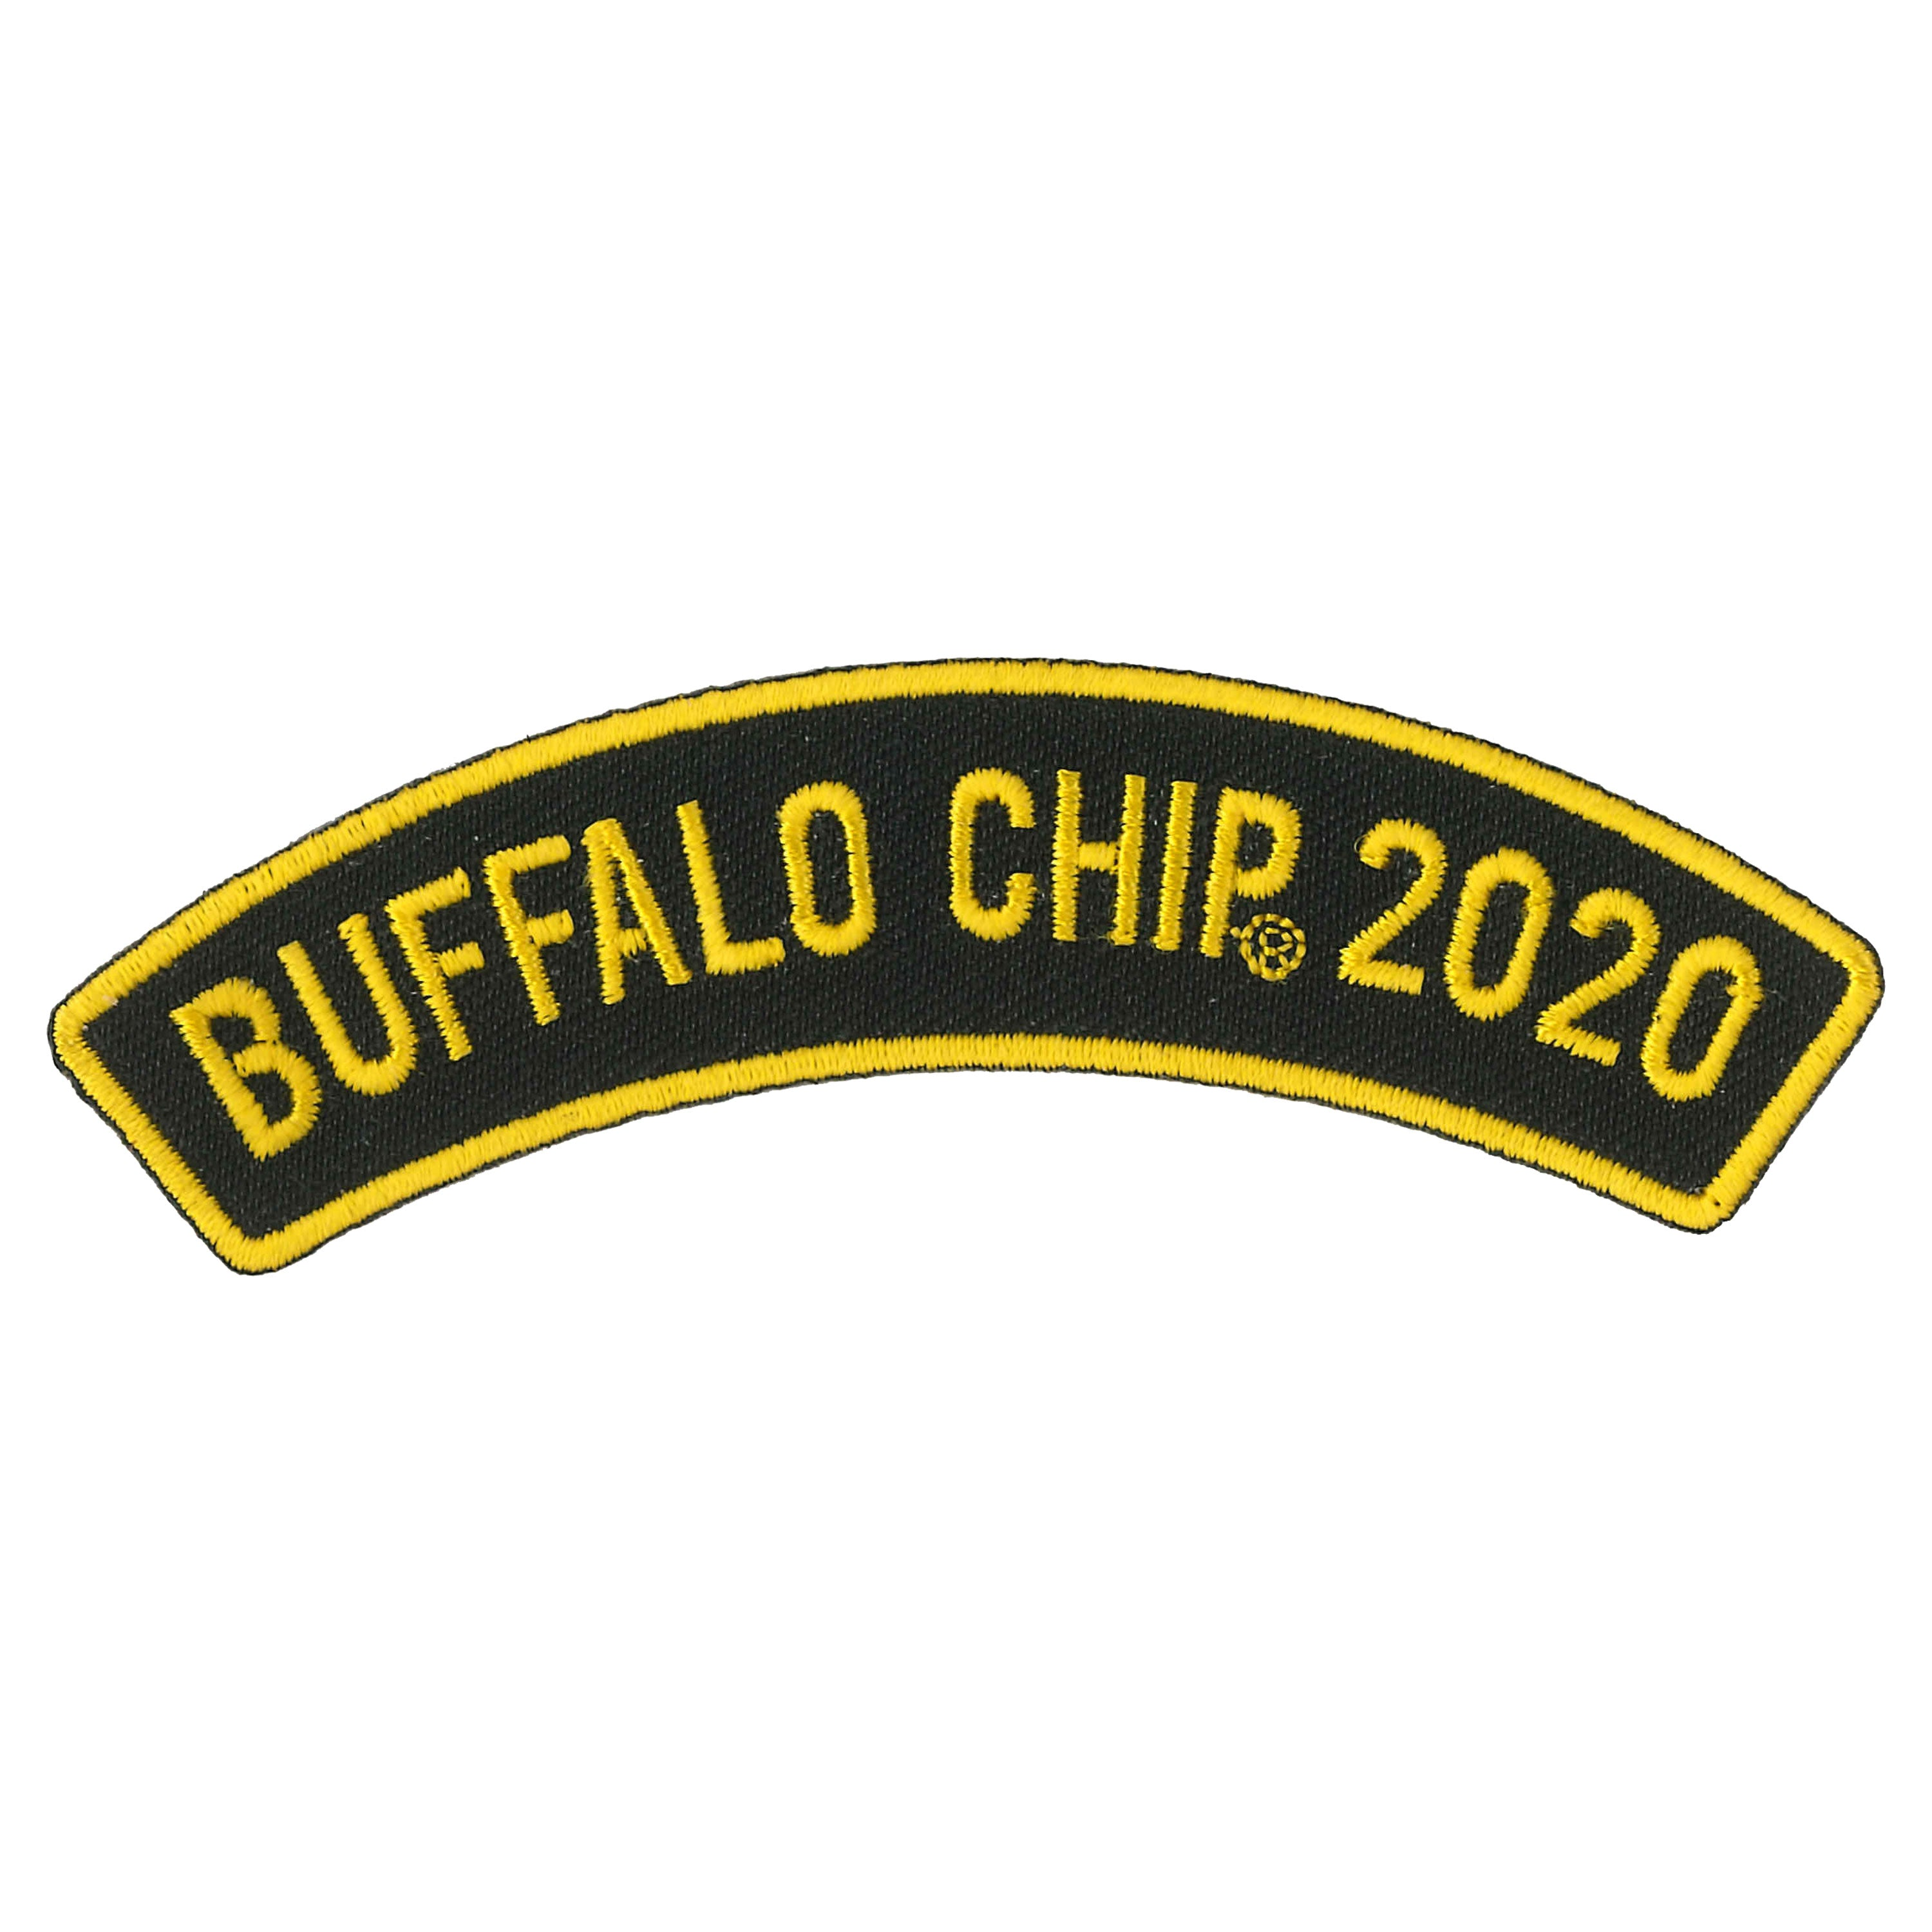 Chip Rocker 2020 Patch